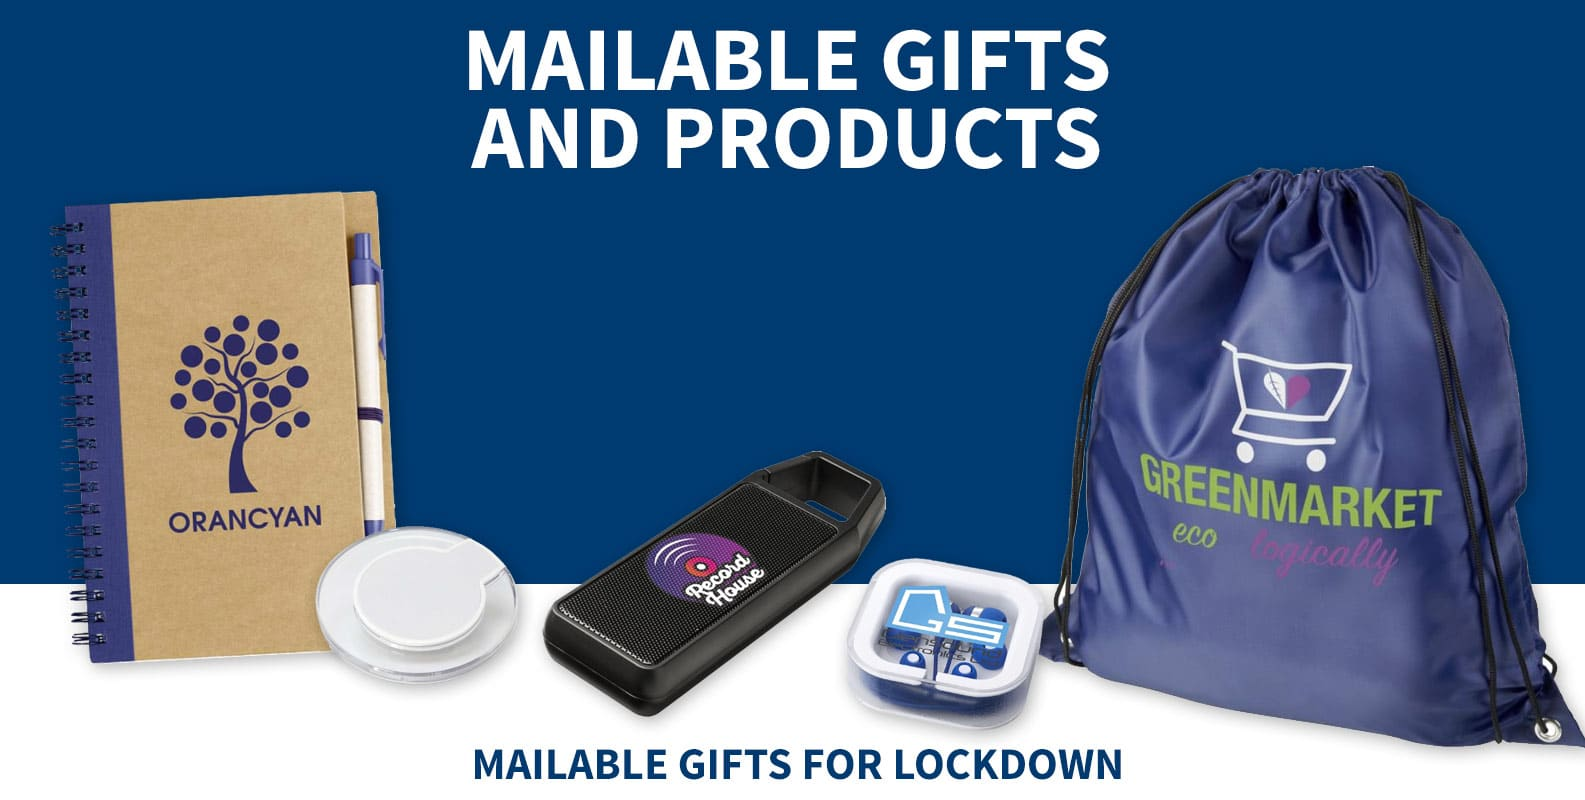 MAILABLE PROMOTIONAL GIFTS WORKING FROM HOME